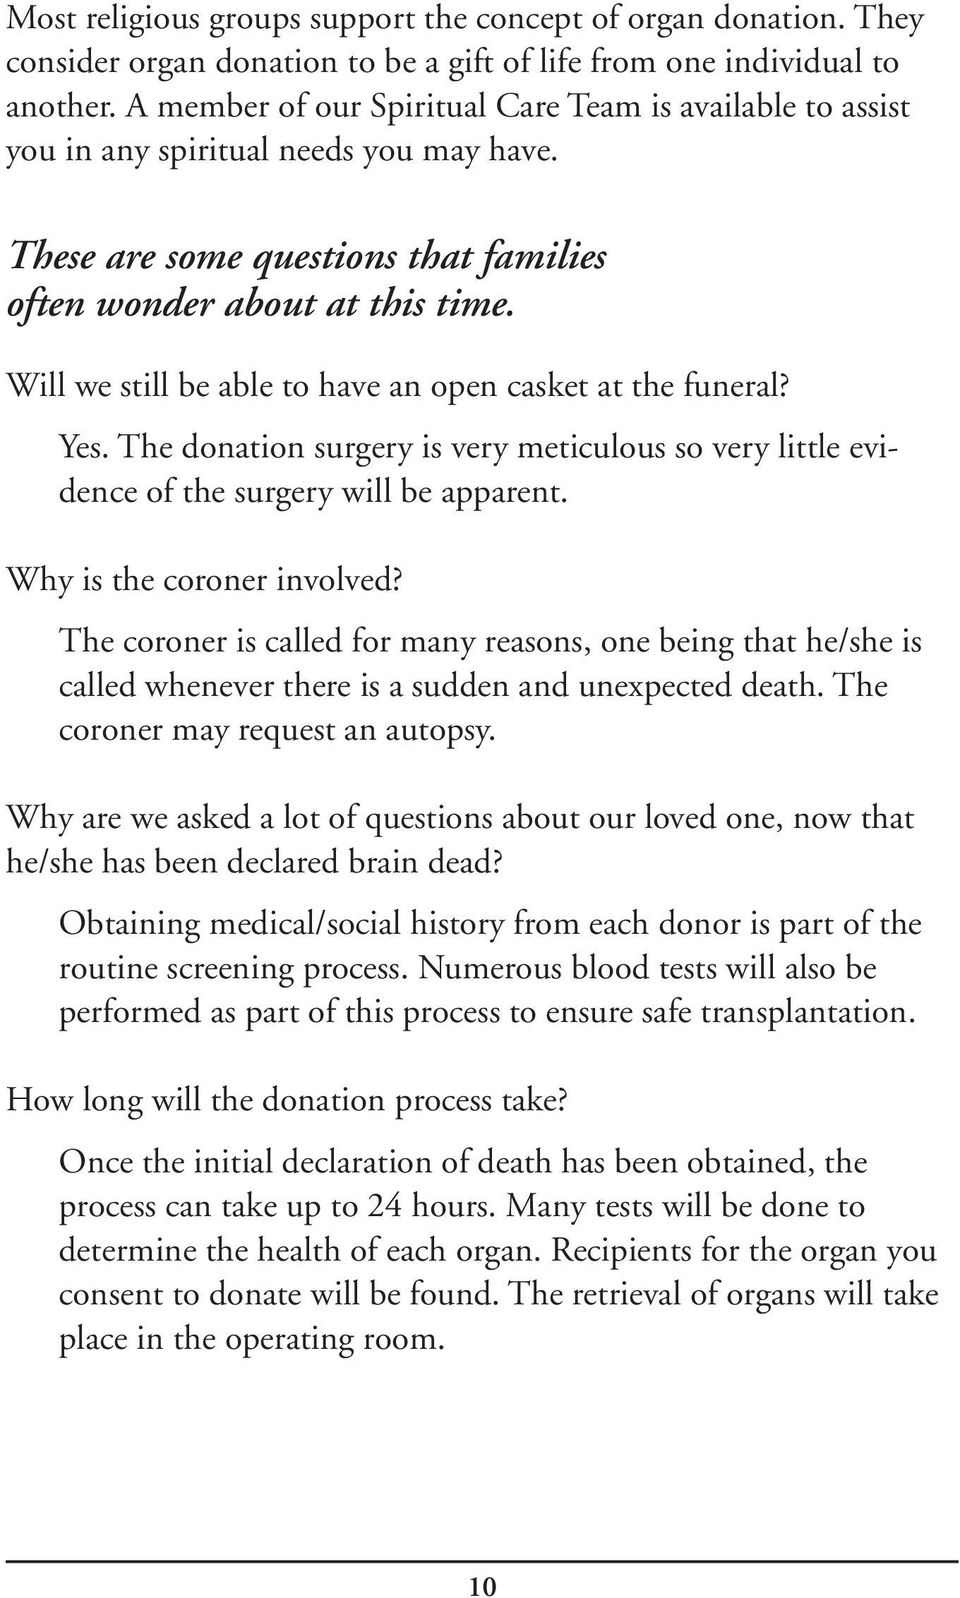 Will we still be able to have an open casket at the funeral? Yes. The donation surgery is very meticulous so very little evidence of the surgery will be apparent. Why is the coroner involved?